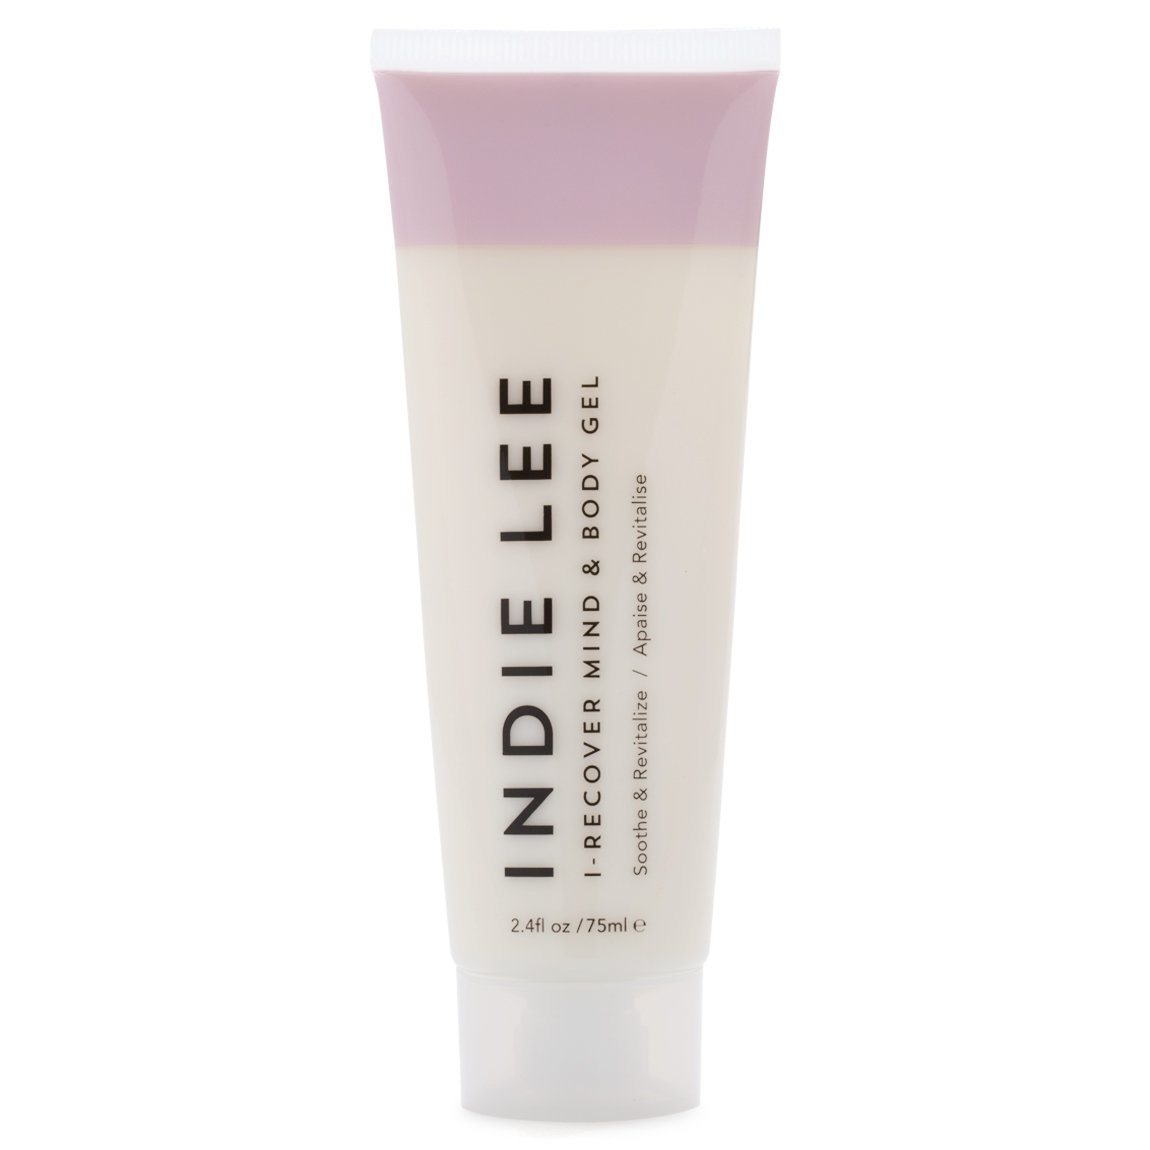 Indie Lee I-Recover Mind + Body Gel product smear.